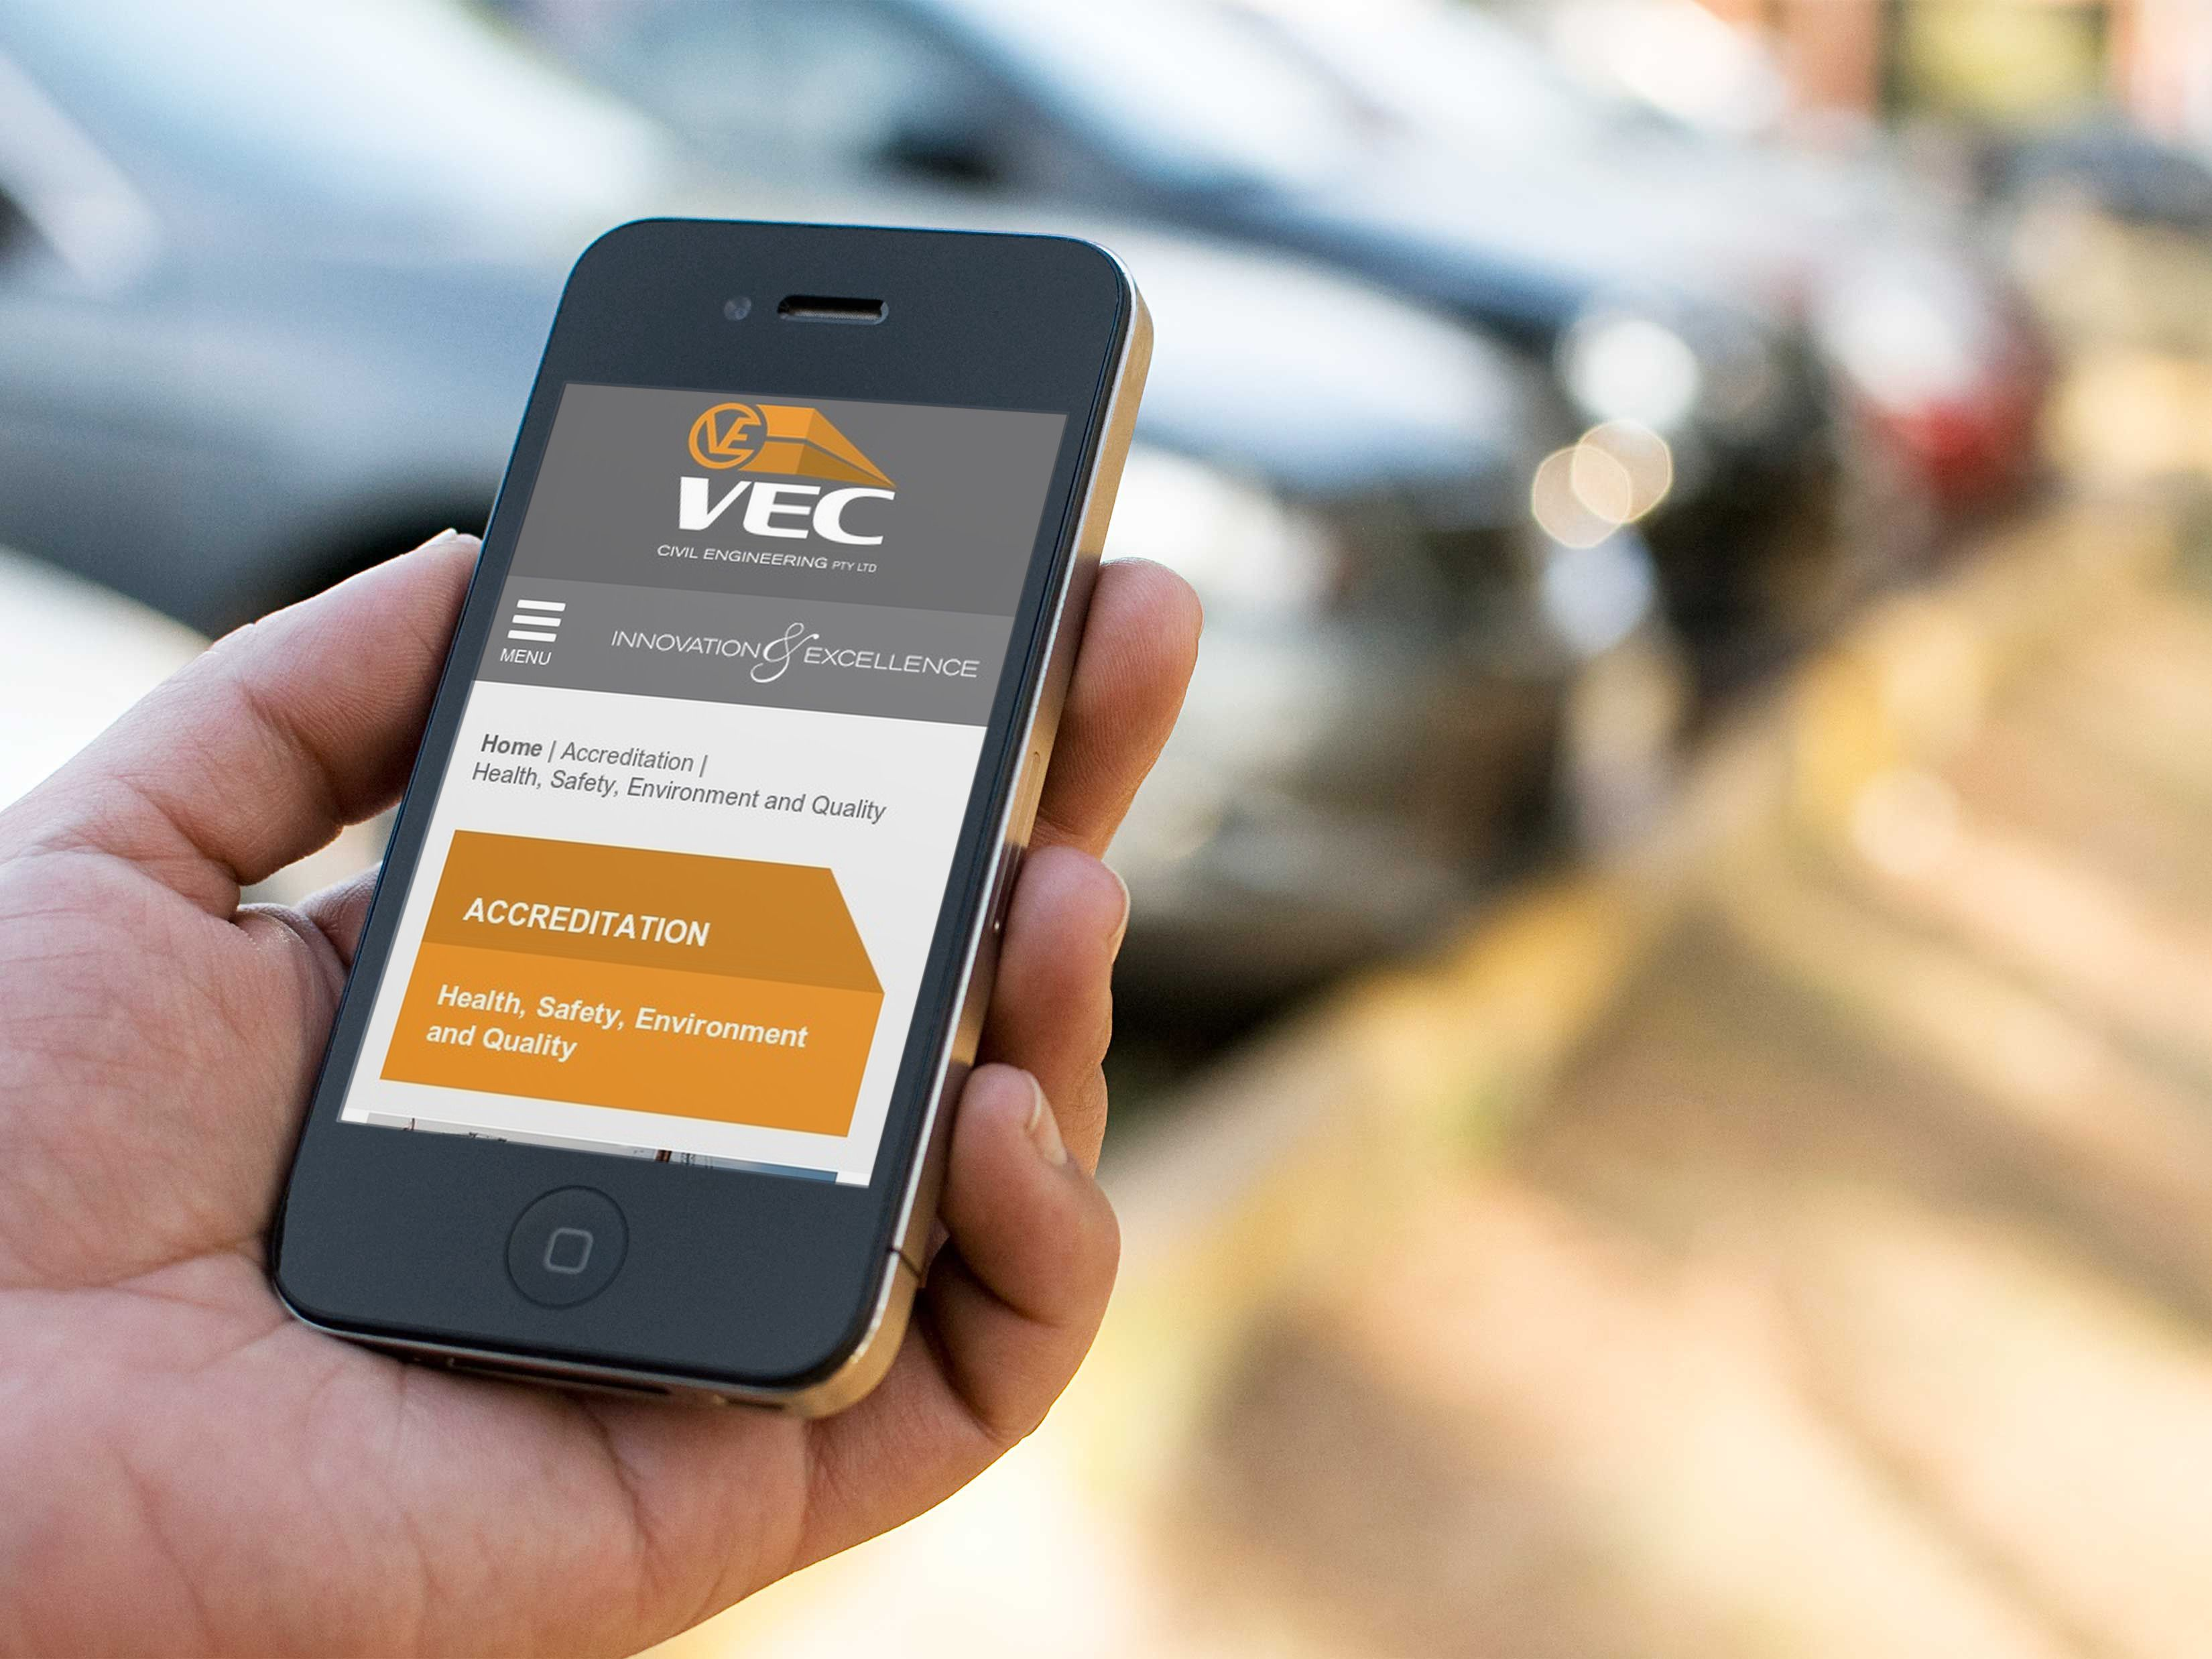 Past Project VEC Civil Engineering. VEC has committed the